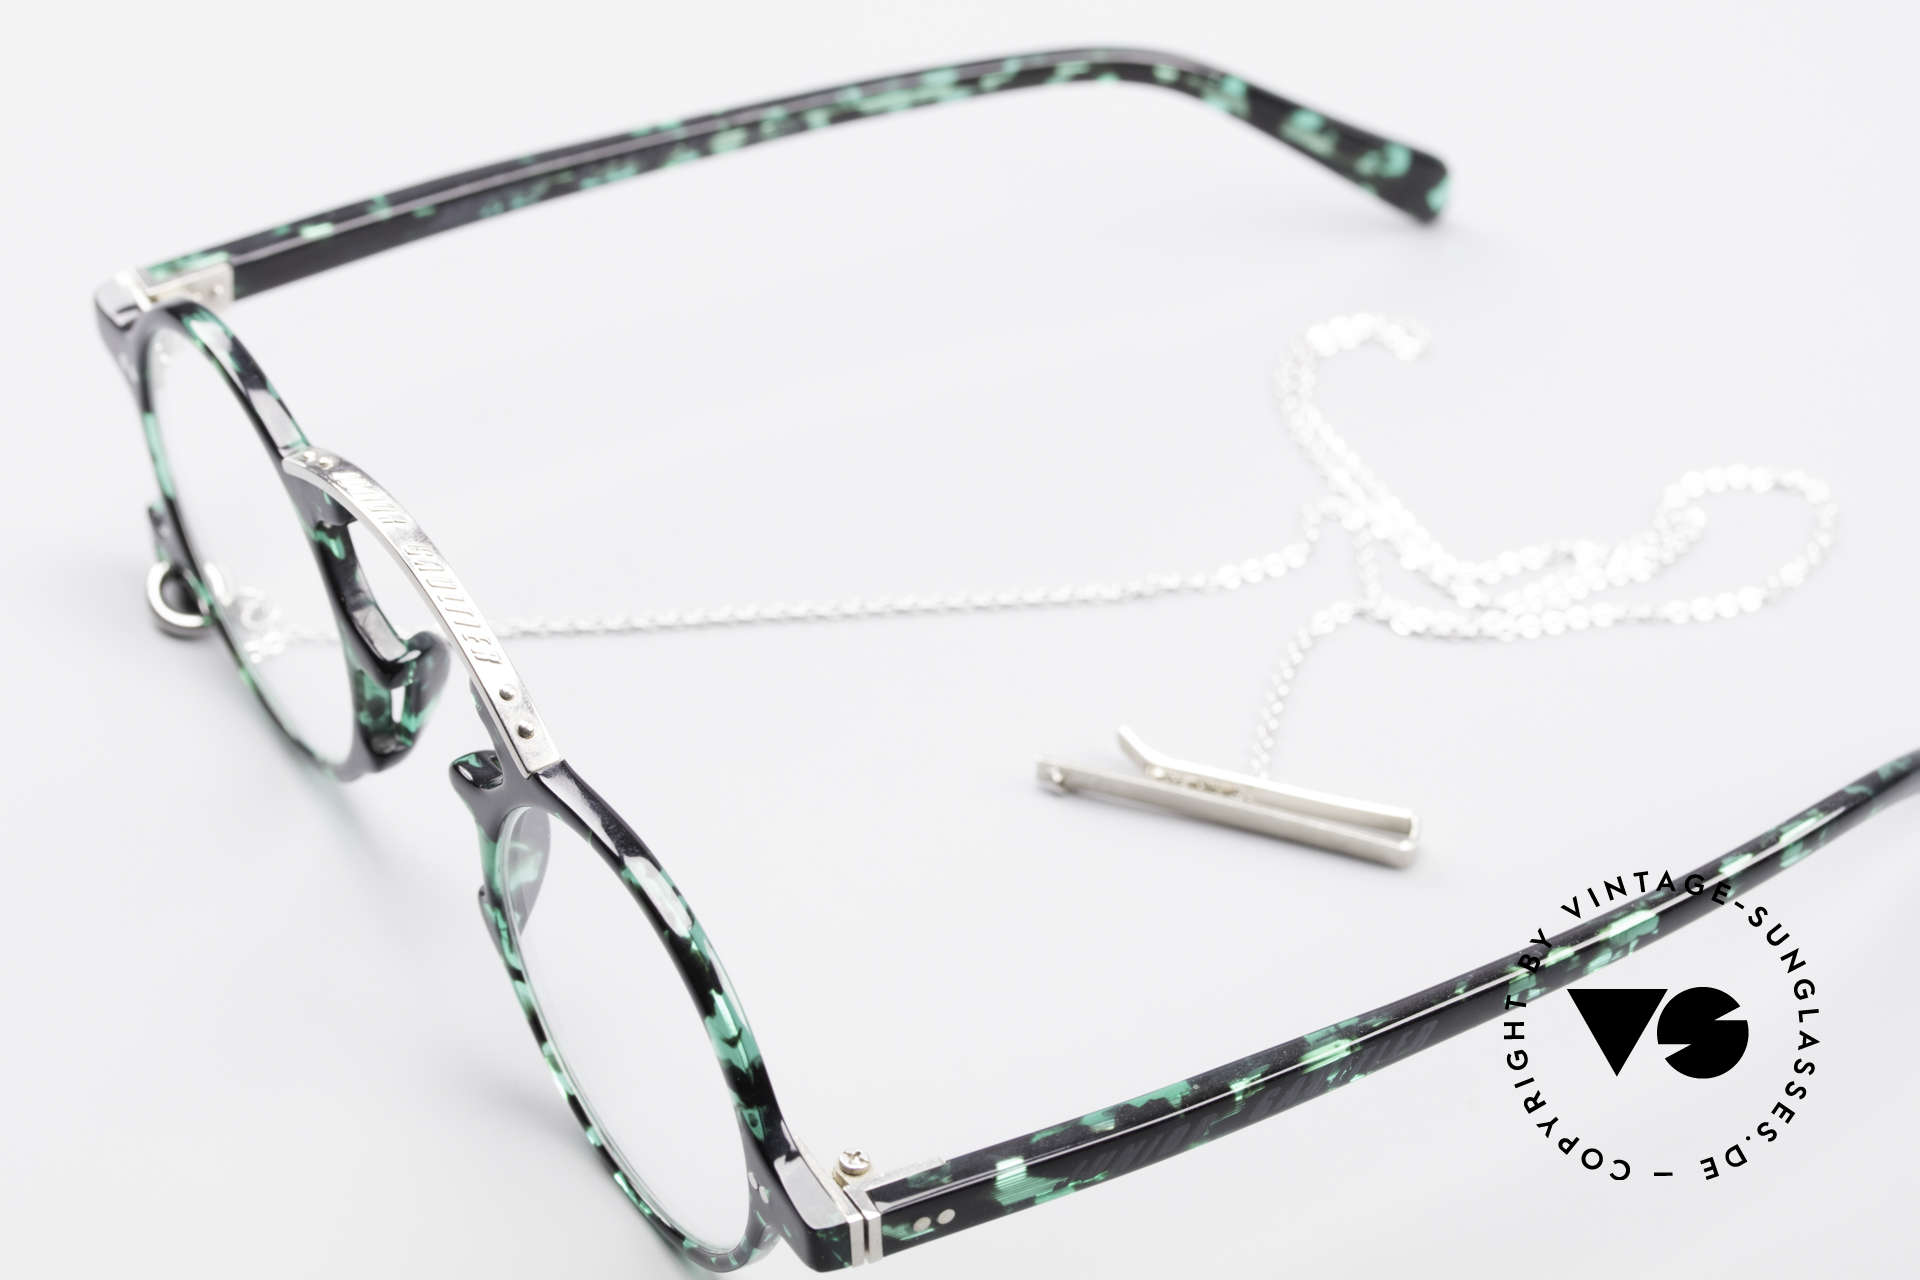 Jean Paul Gaultier 58-0271 90's Steampunk Eyeglasses, NO retro frame, but a Gaultier Original from '95, Made for Men and Women